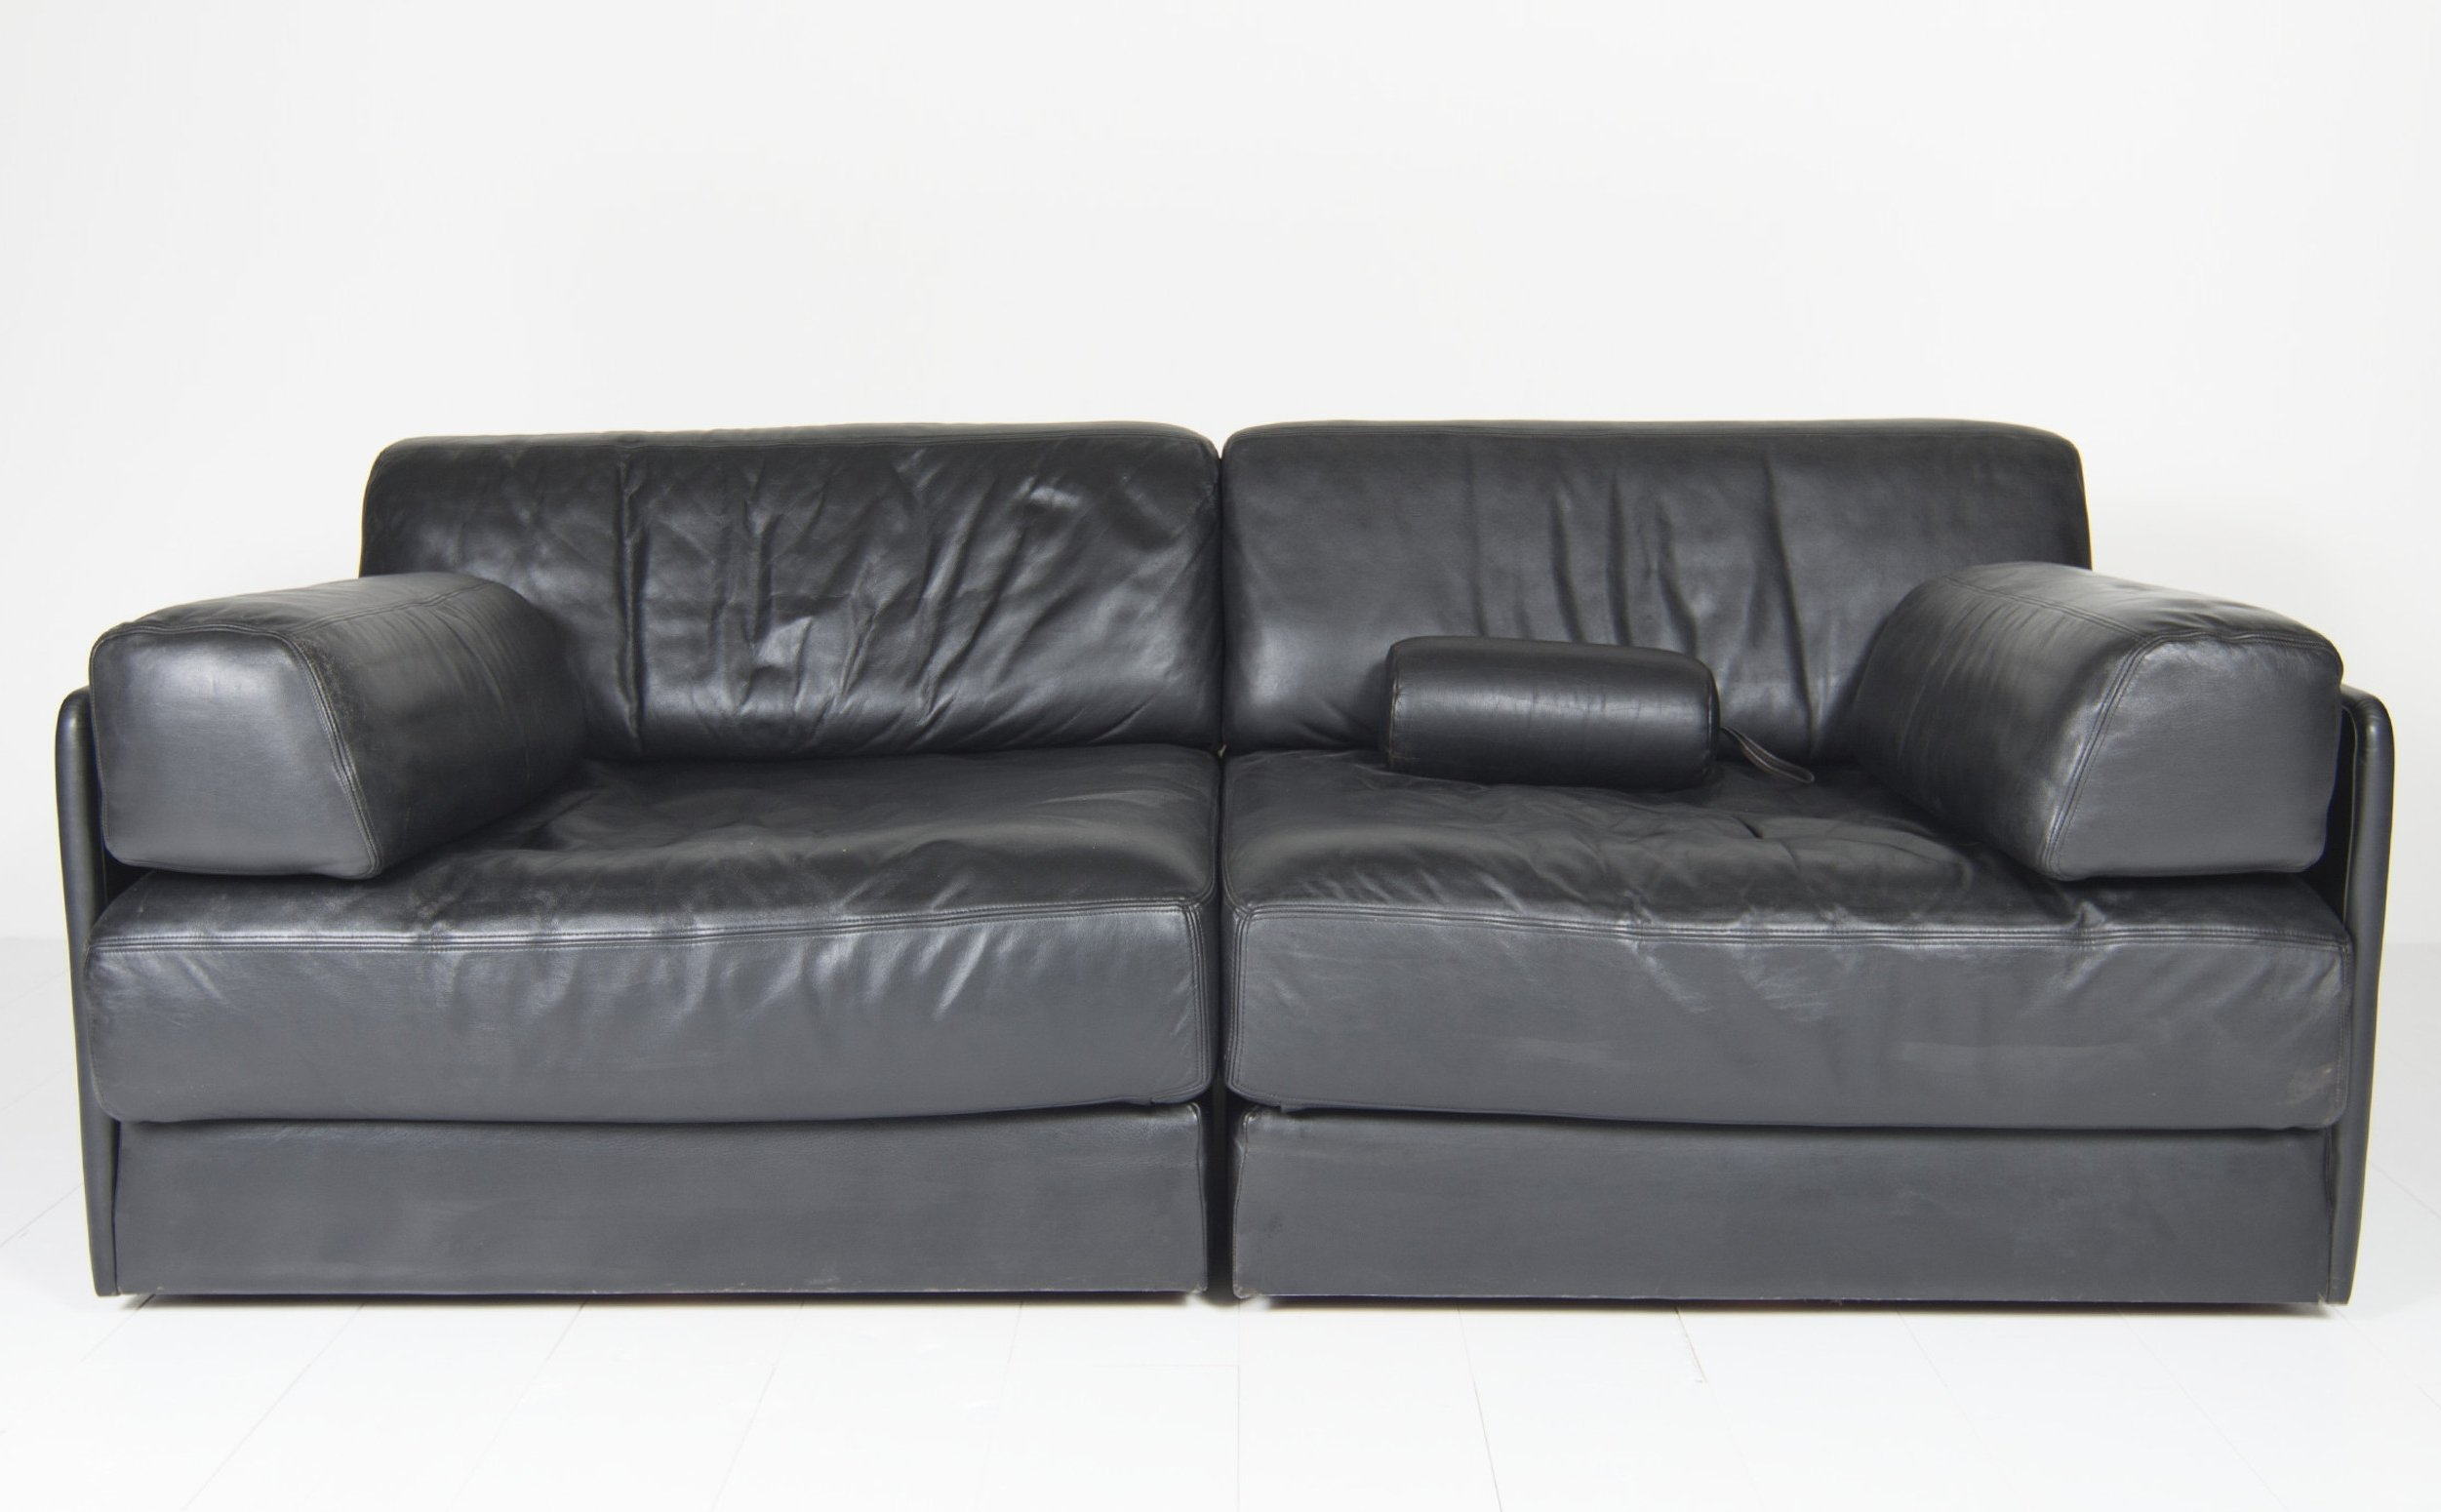 ds 76 sofa from the seventies by de sede design team for. Black Bedroom Furniture Sets. Home Design Ideas